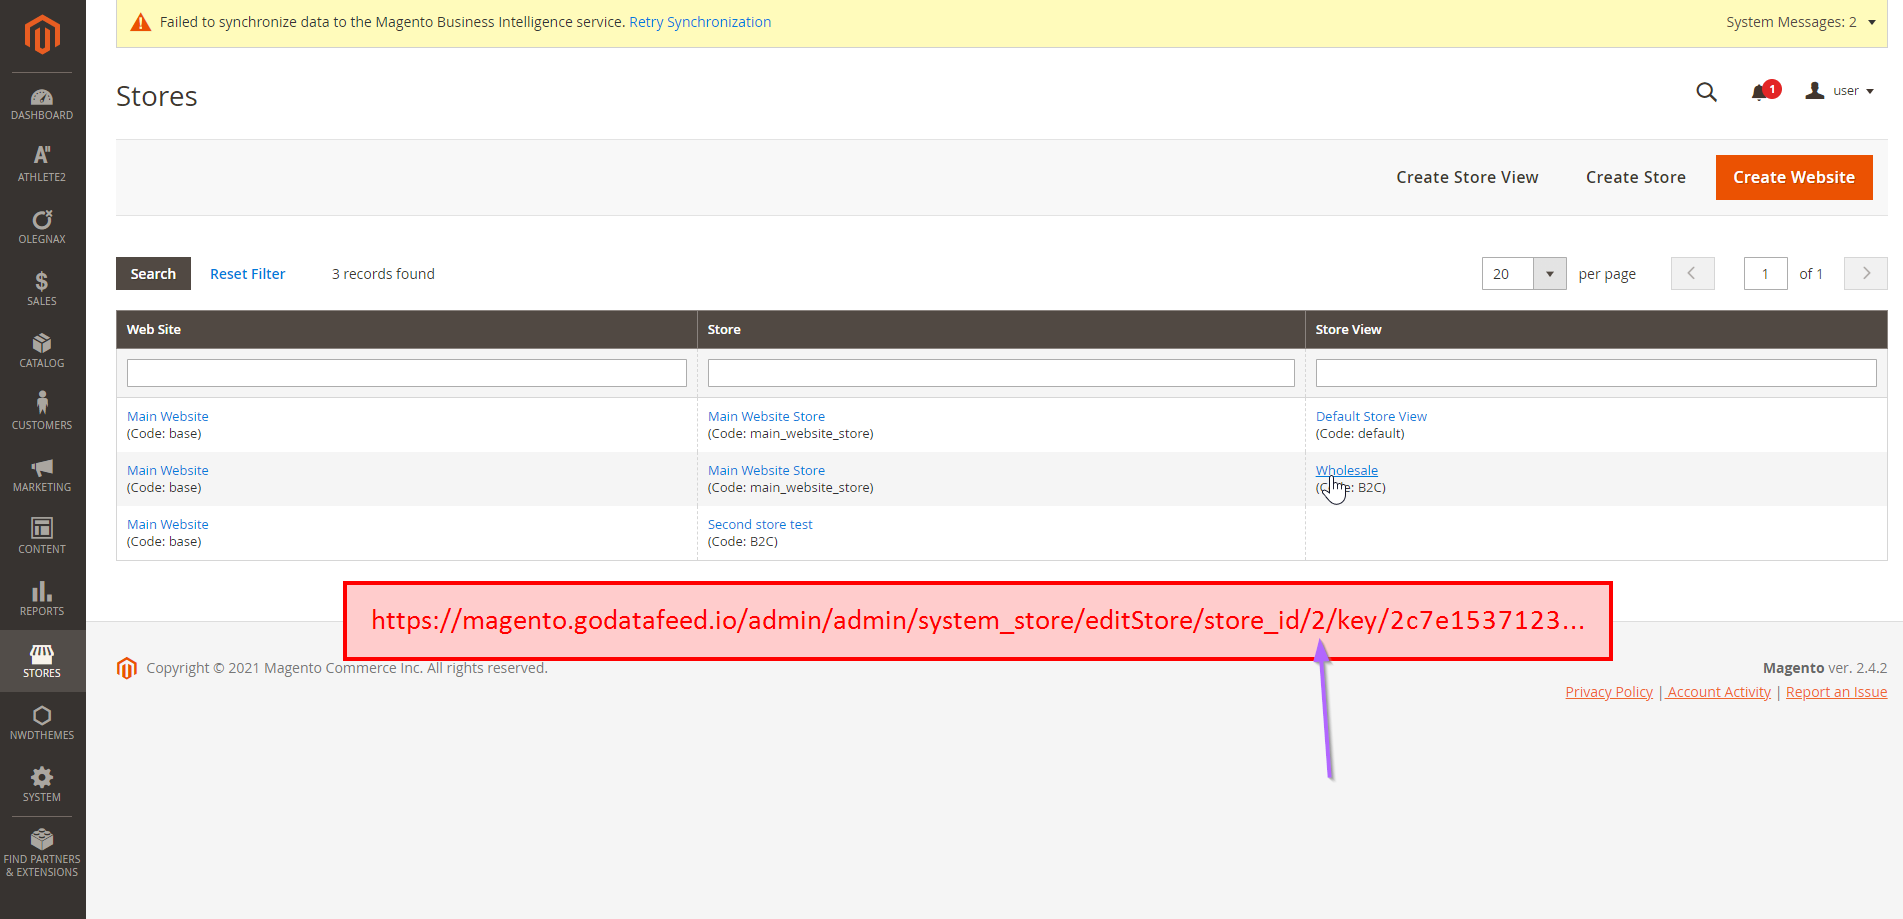 2021-04-01_13_19_06-Stores___Settings___Stores___Magento_Admin.png